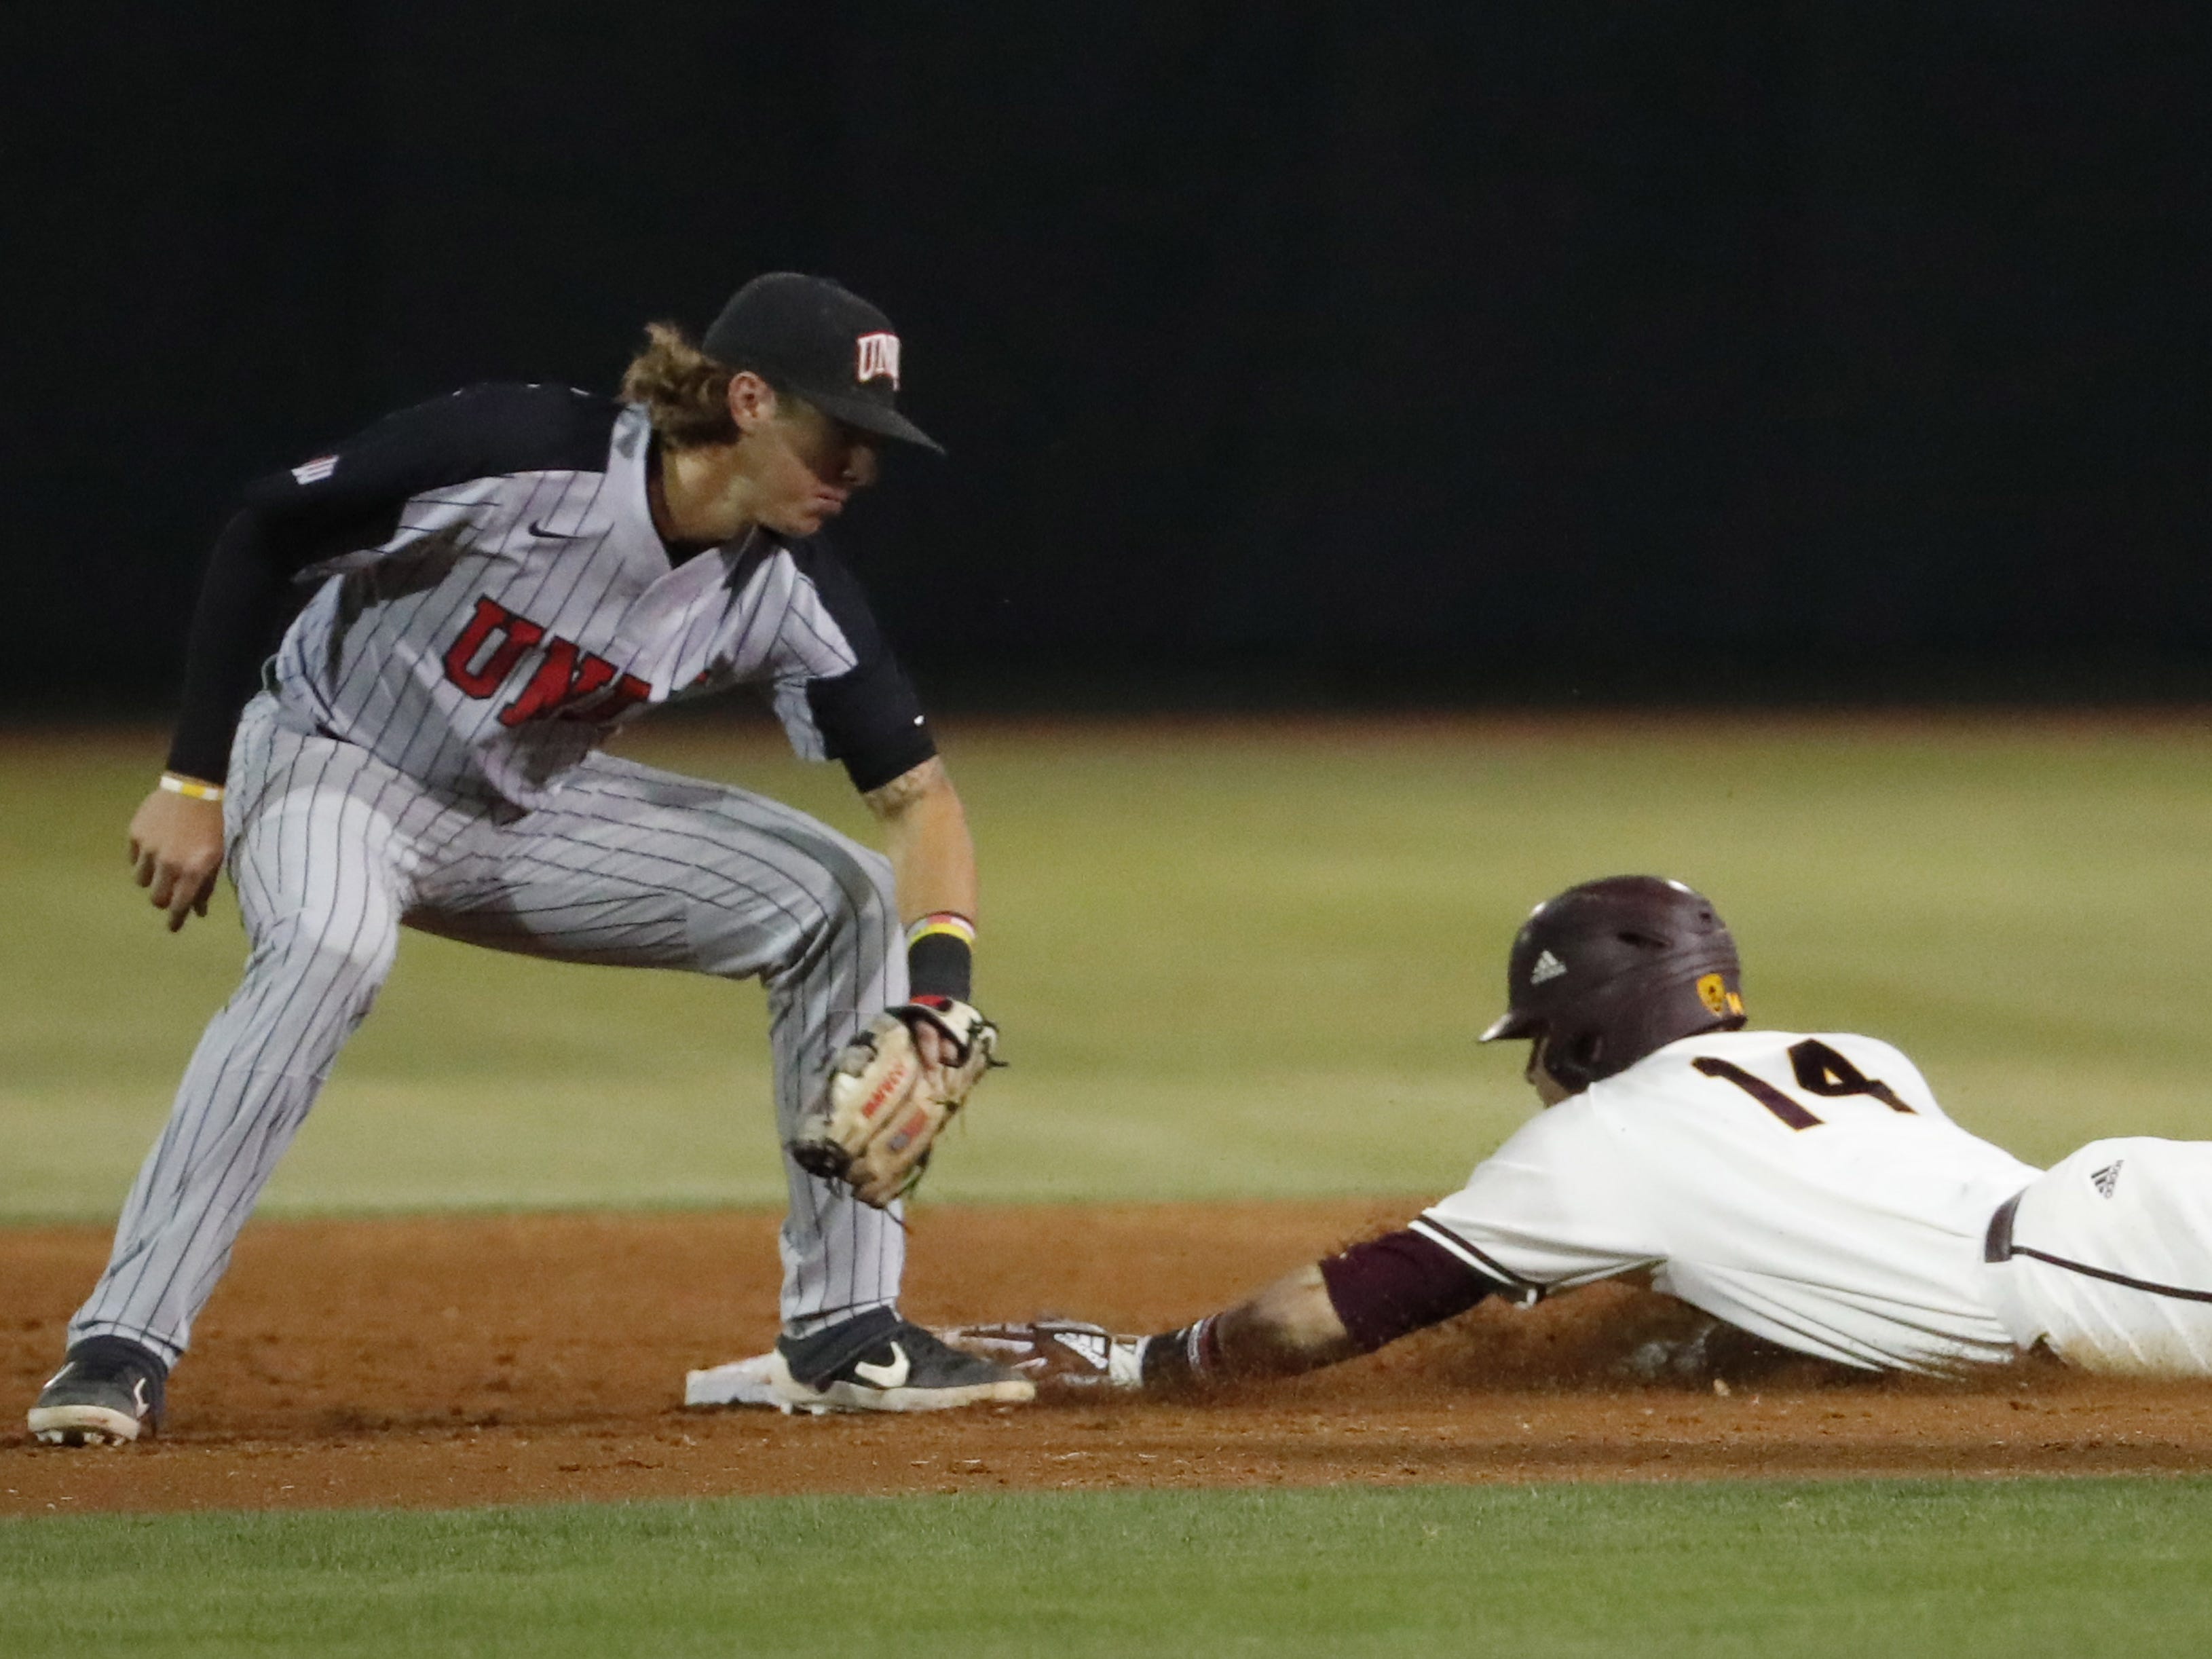 ASU's Gage Workman steals second base ahead of the tag by UNLV shortstop Bryson Stott during the third inning in Phoenix April 23, 2019.